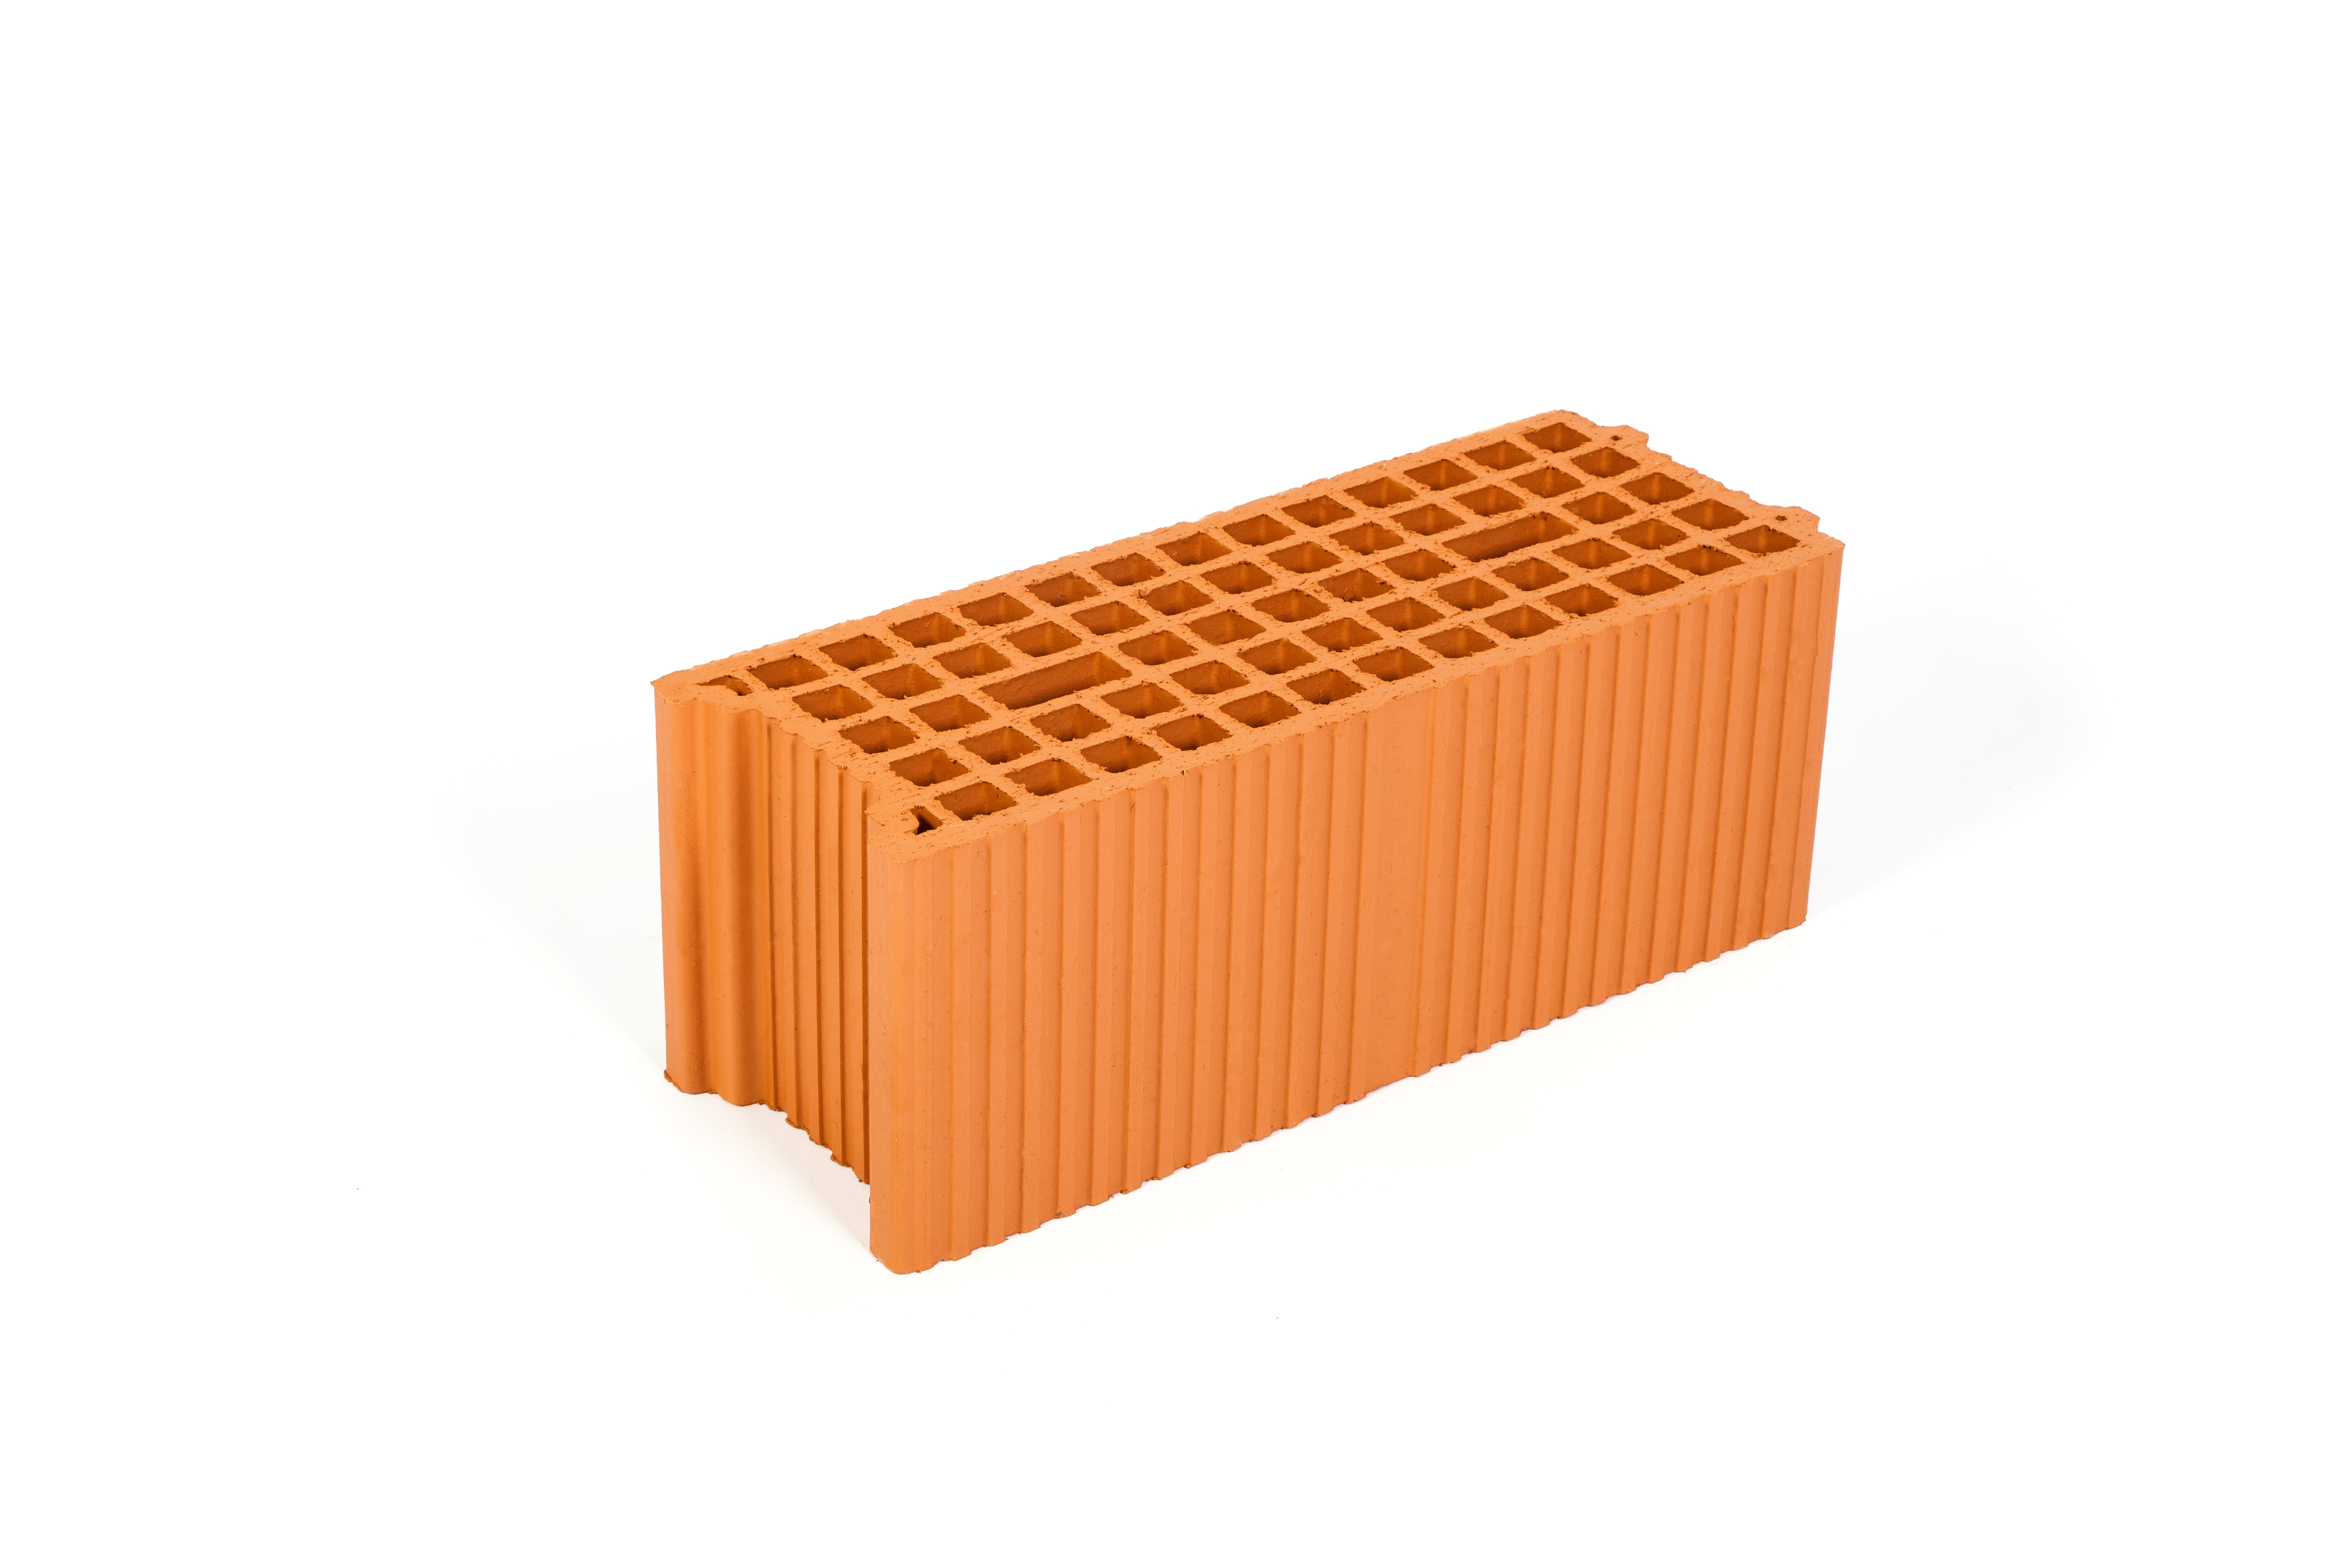 Go max 19 PU hollow bricks